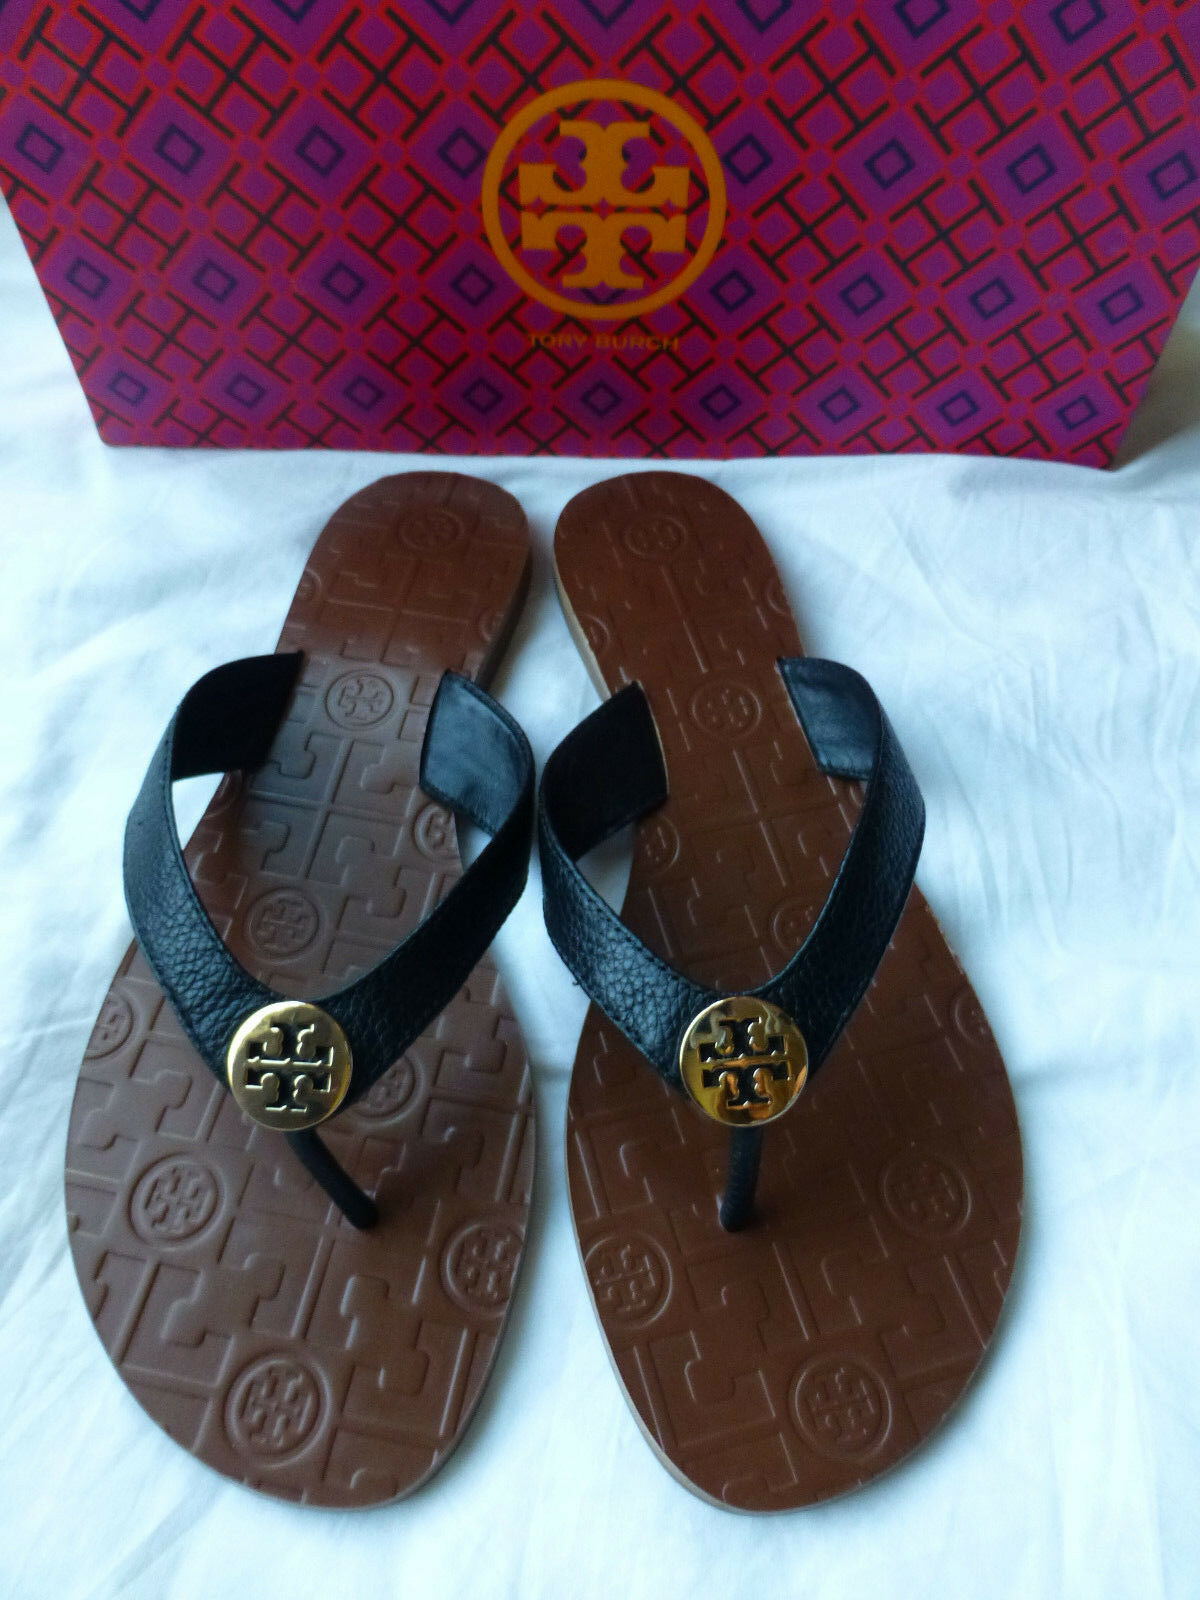 TORY BURCH Thora Black gold Logo Tumbled Leather Size 9 New